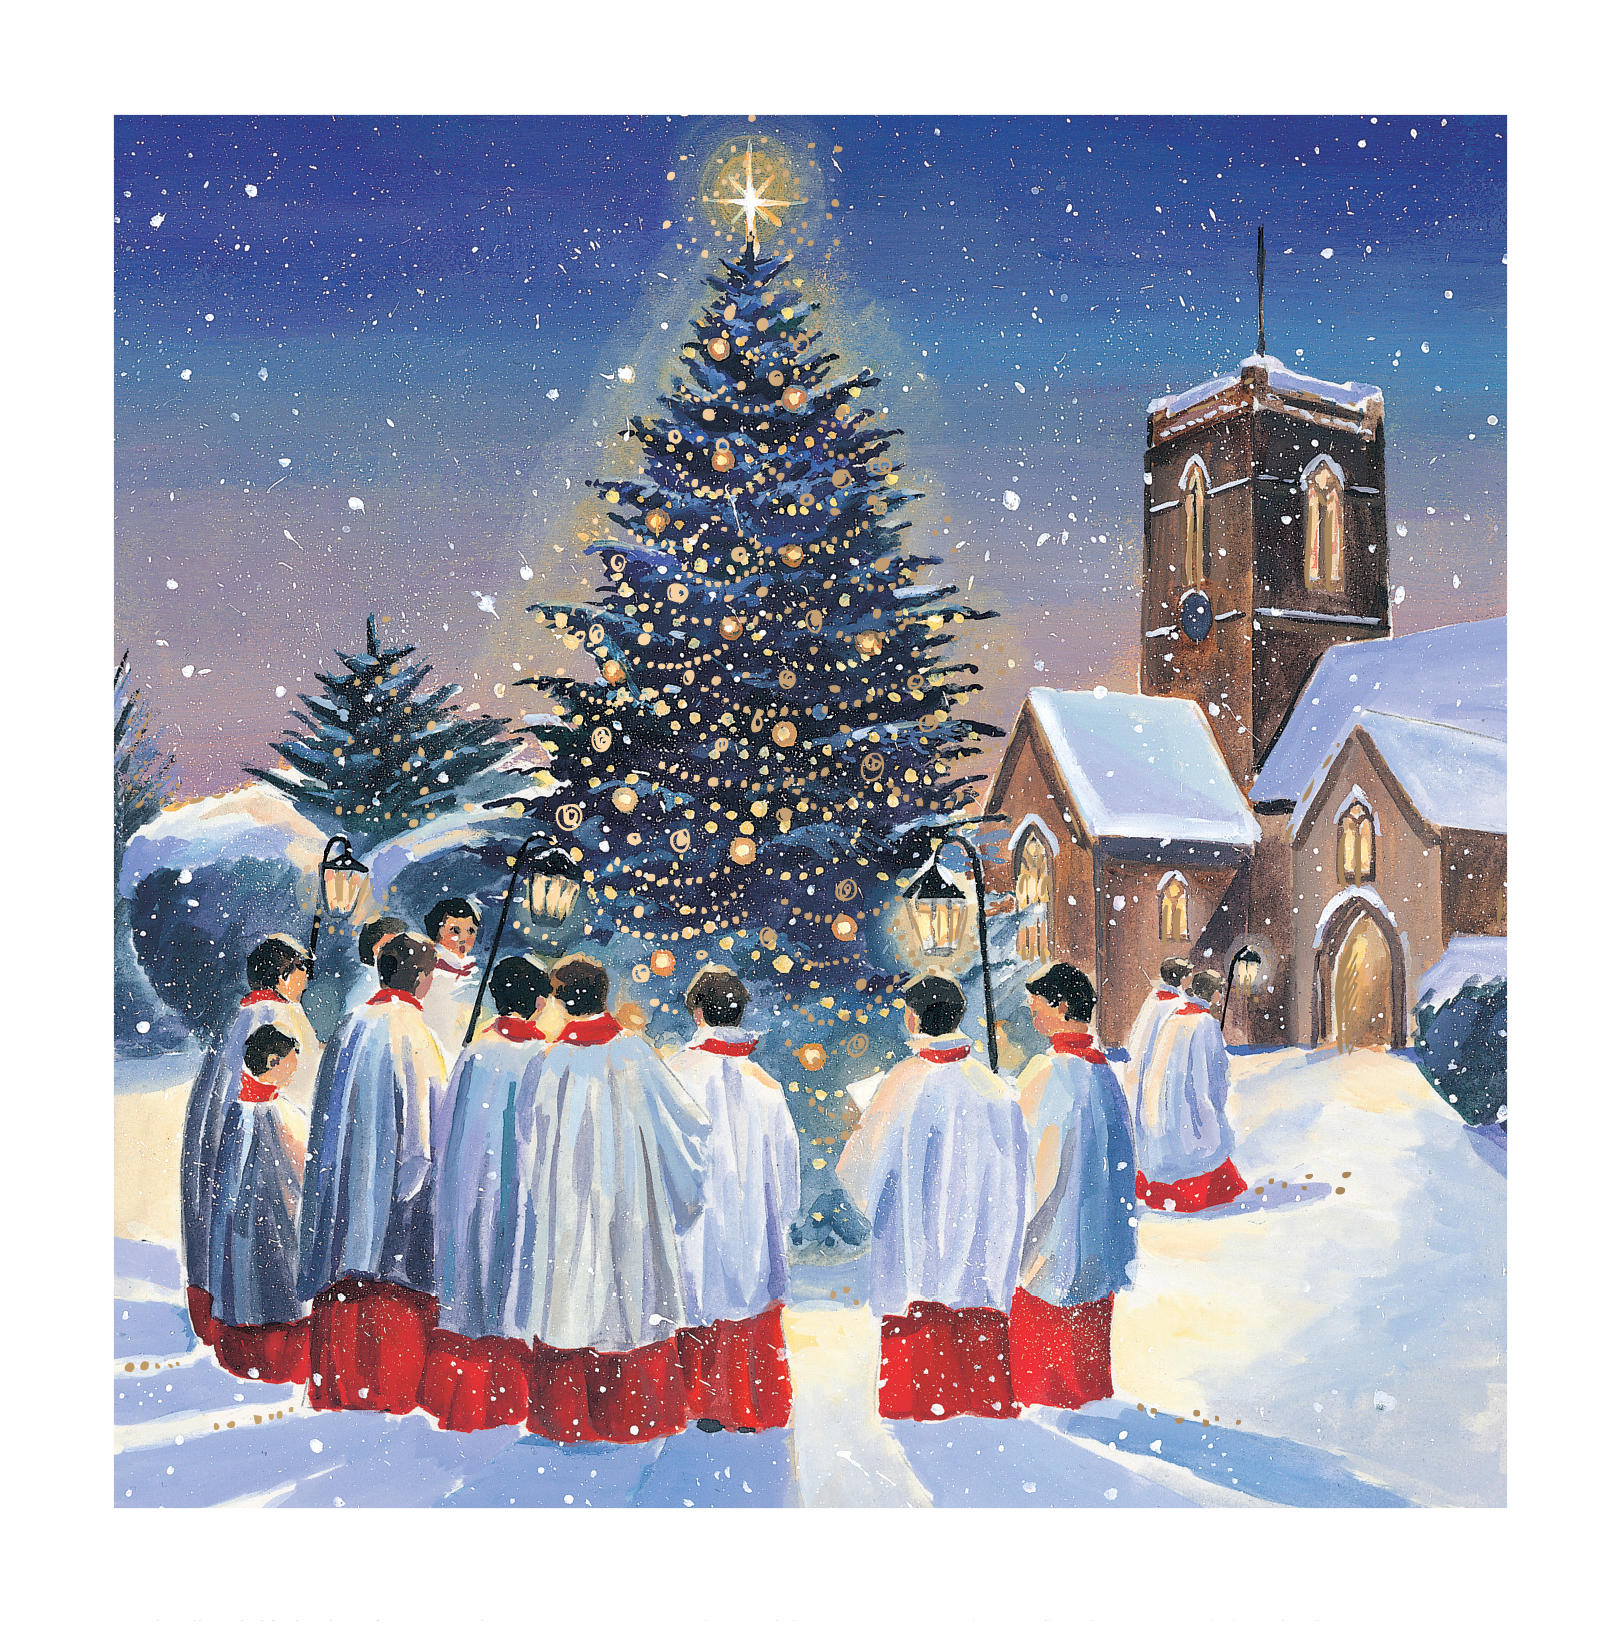 Christmas Cards - Give hope with every card this Christmas